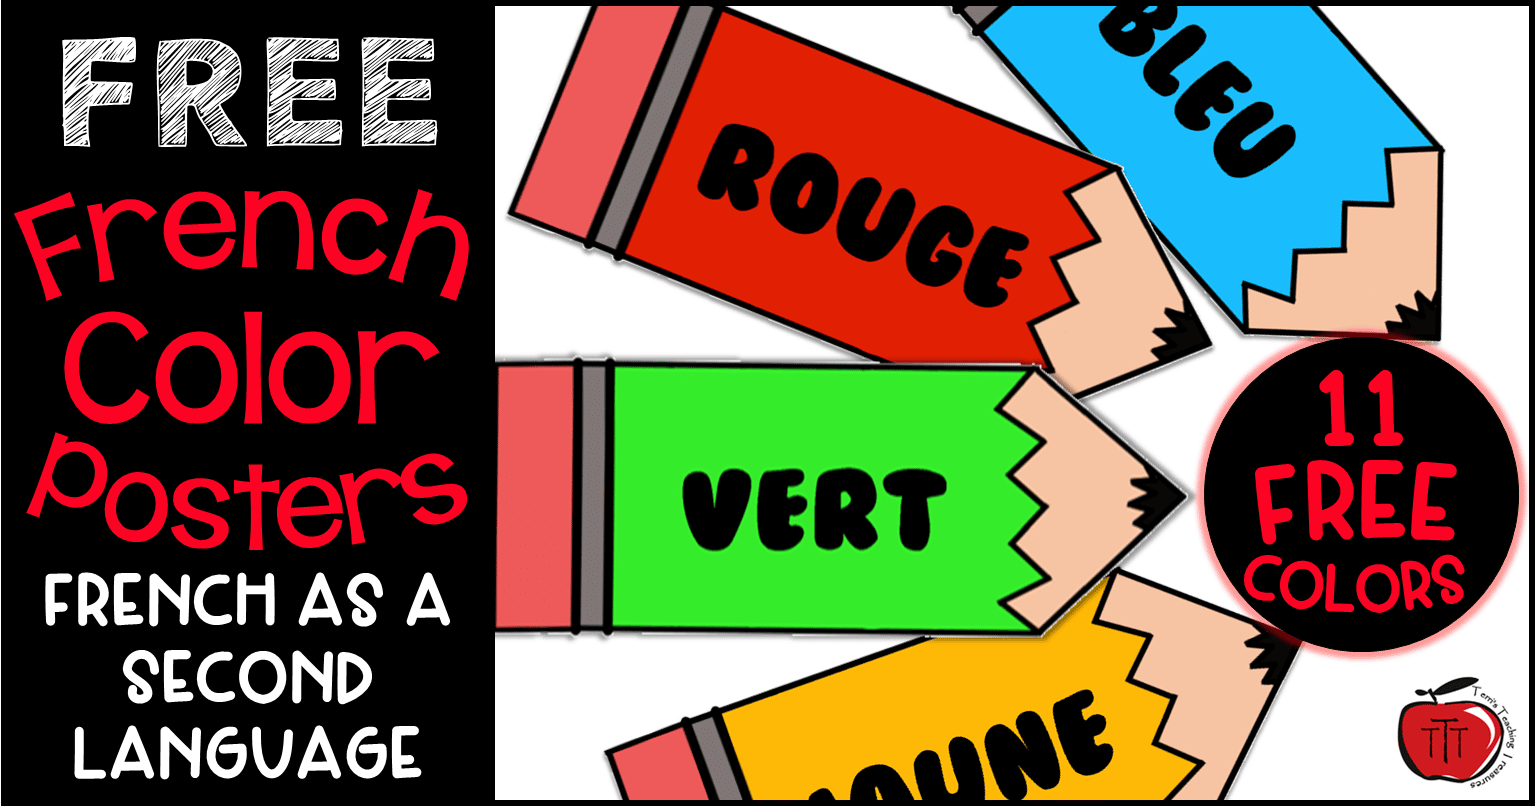 Free French Color Reference Signs